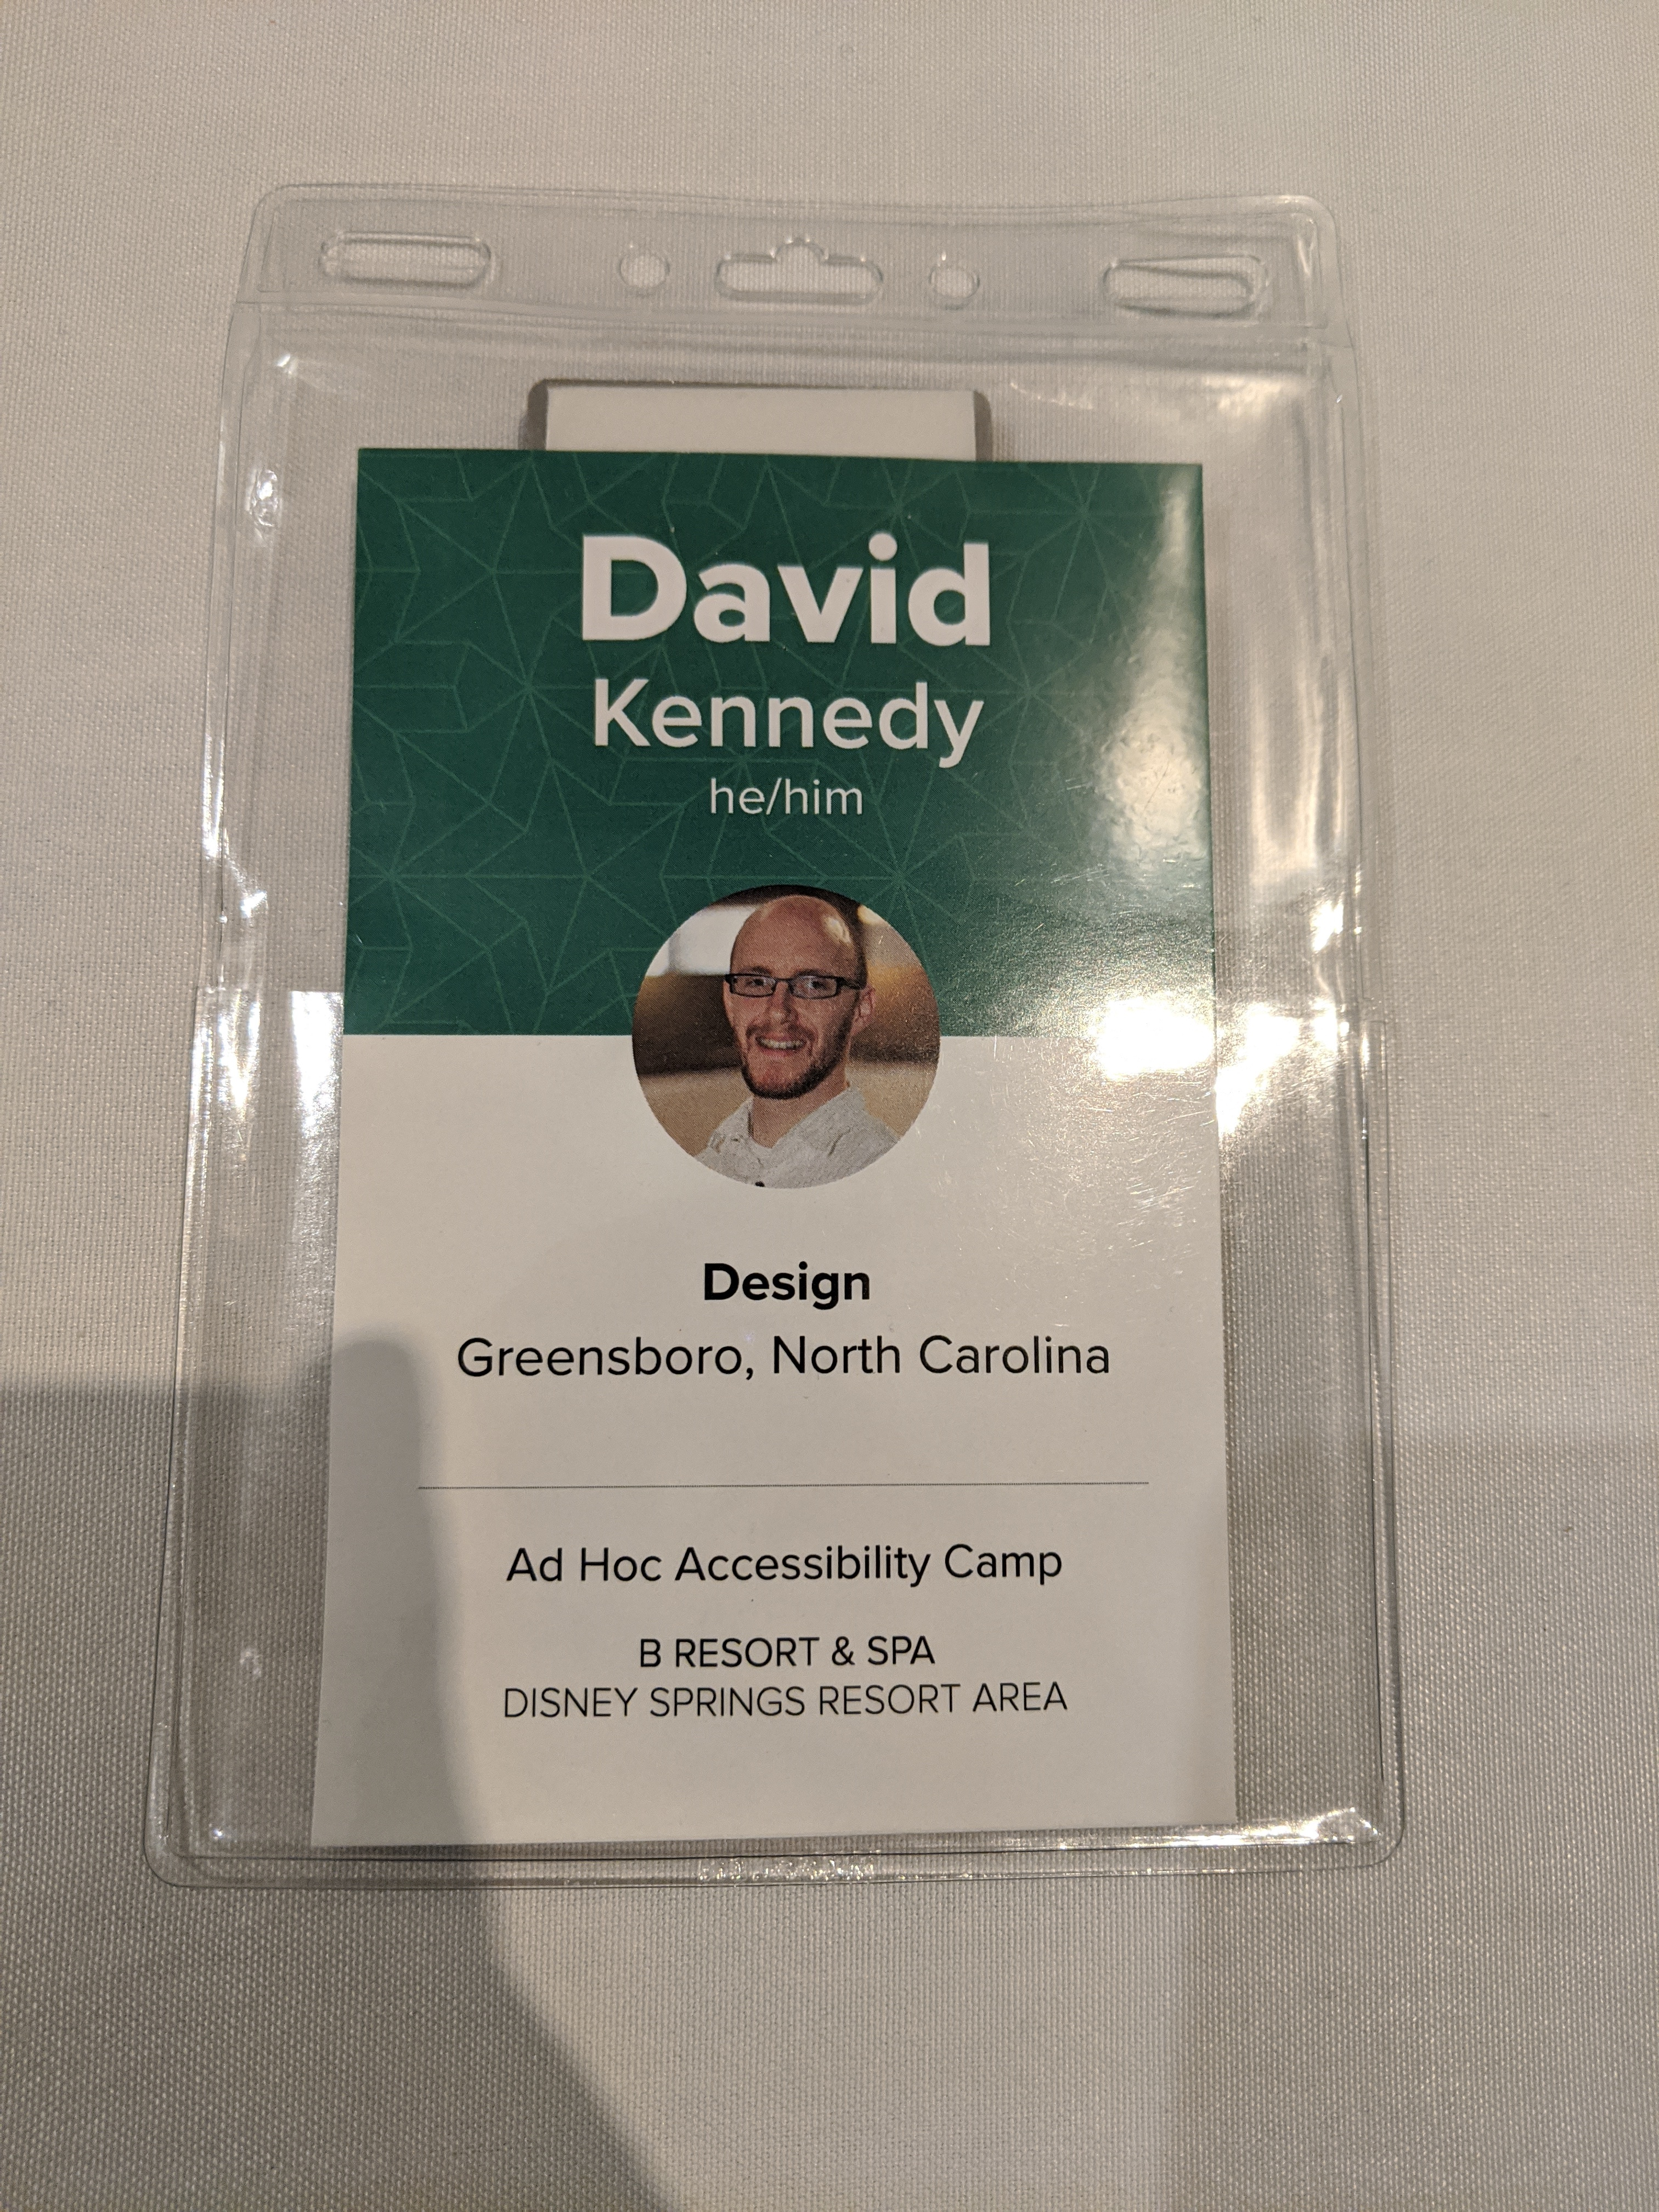 Ad Hoc Accessibility Camp 2020 conference badge with green and white colors and David Kennedy, design on front.